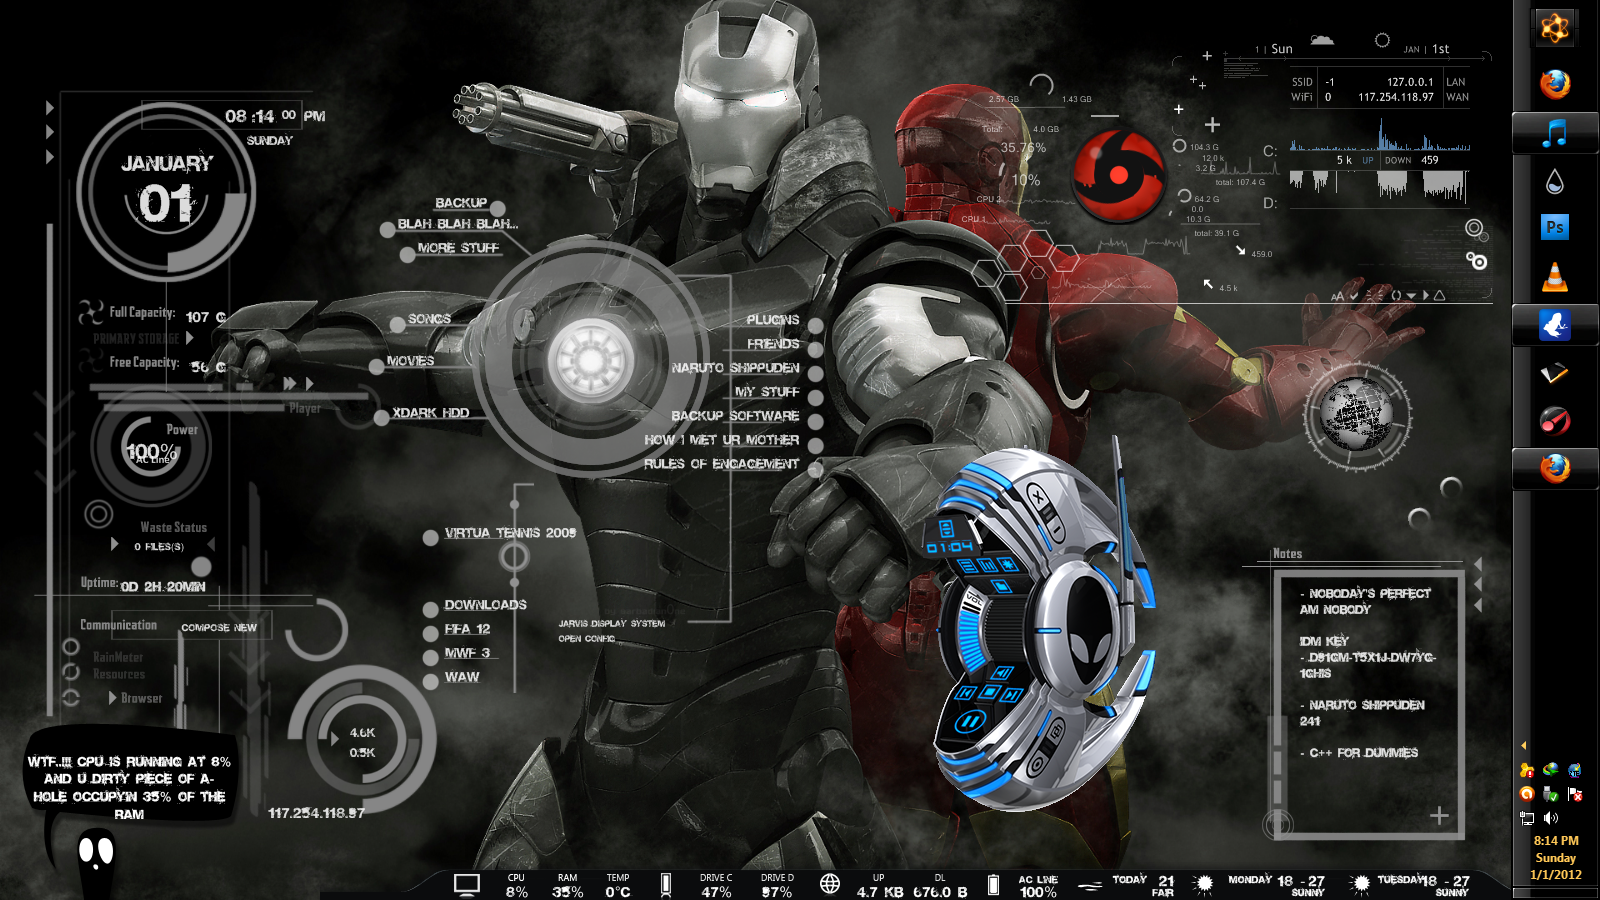 theme live wallpaper,action adventure game,pc game,games,technology,fictional character